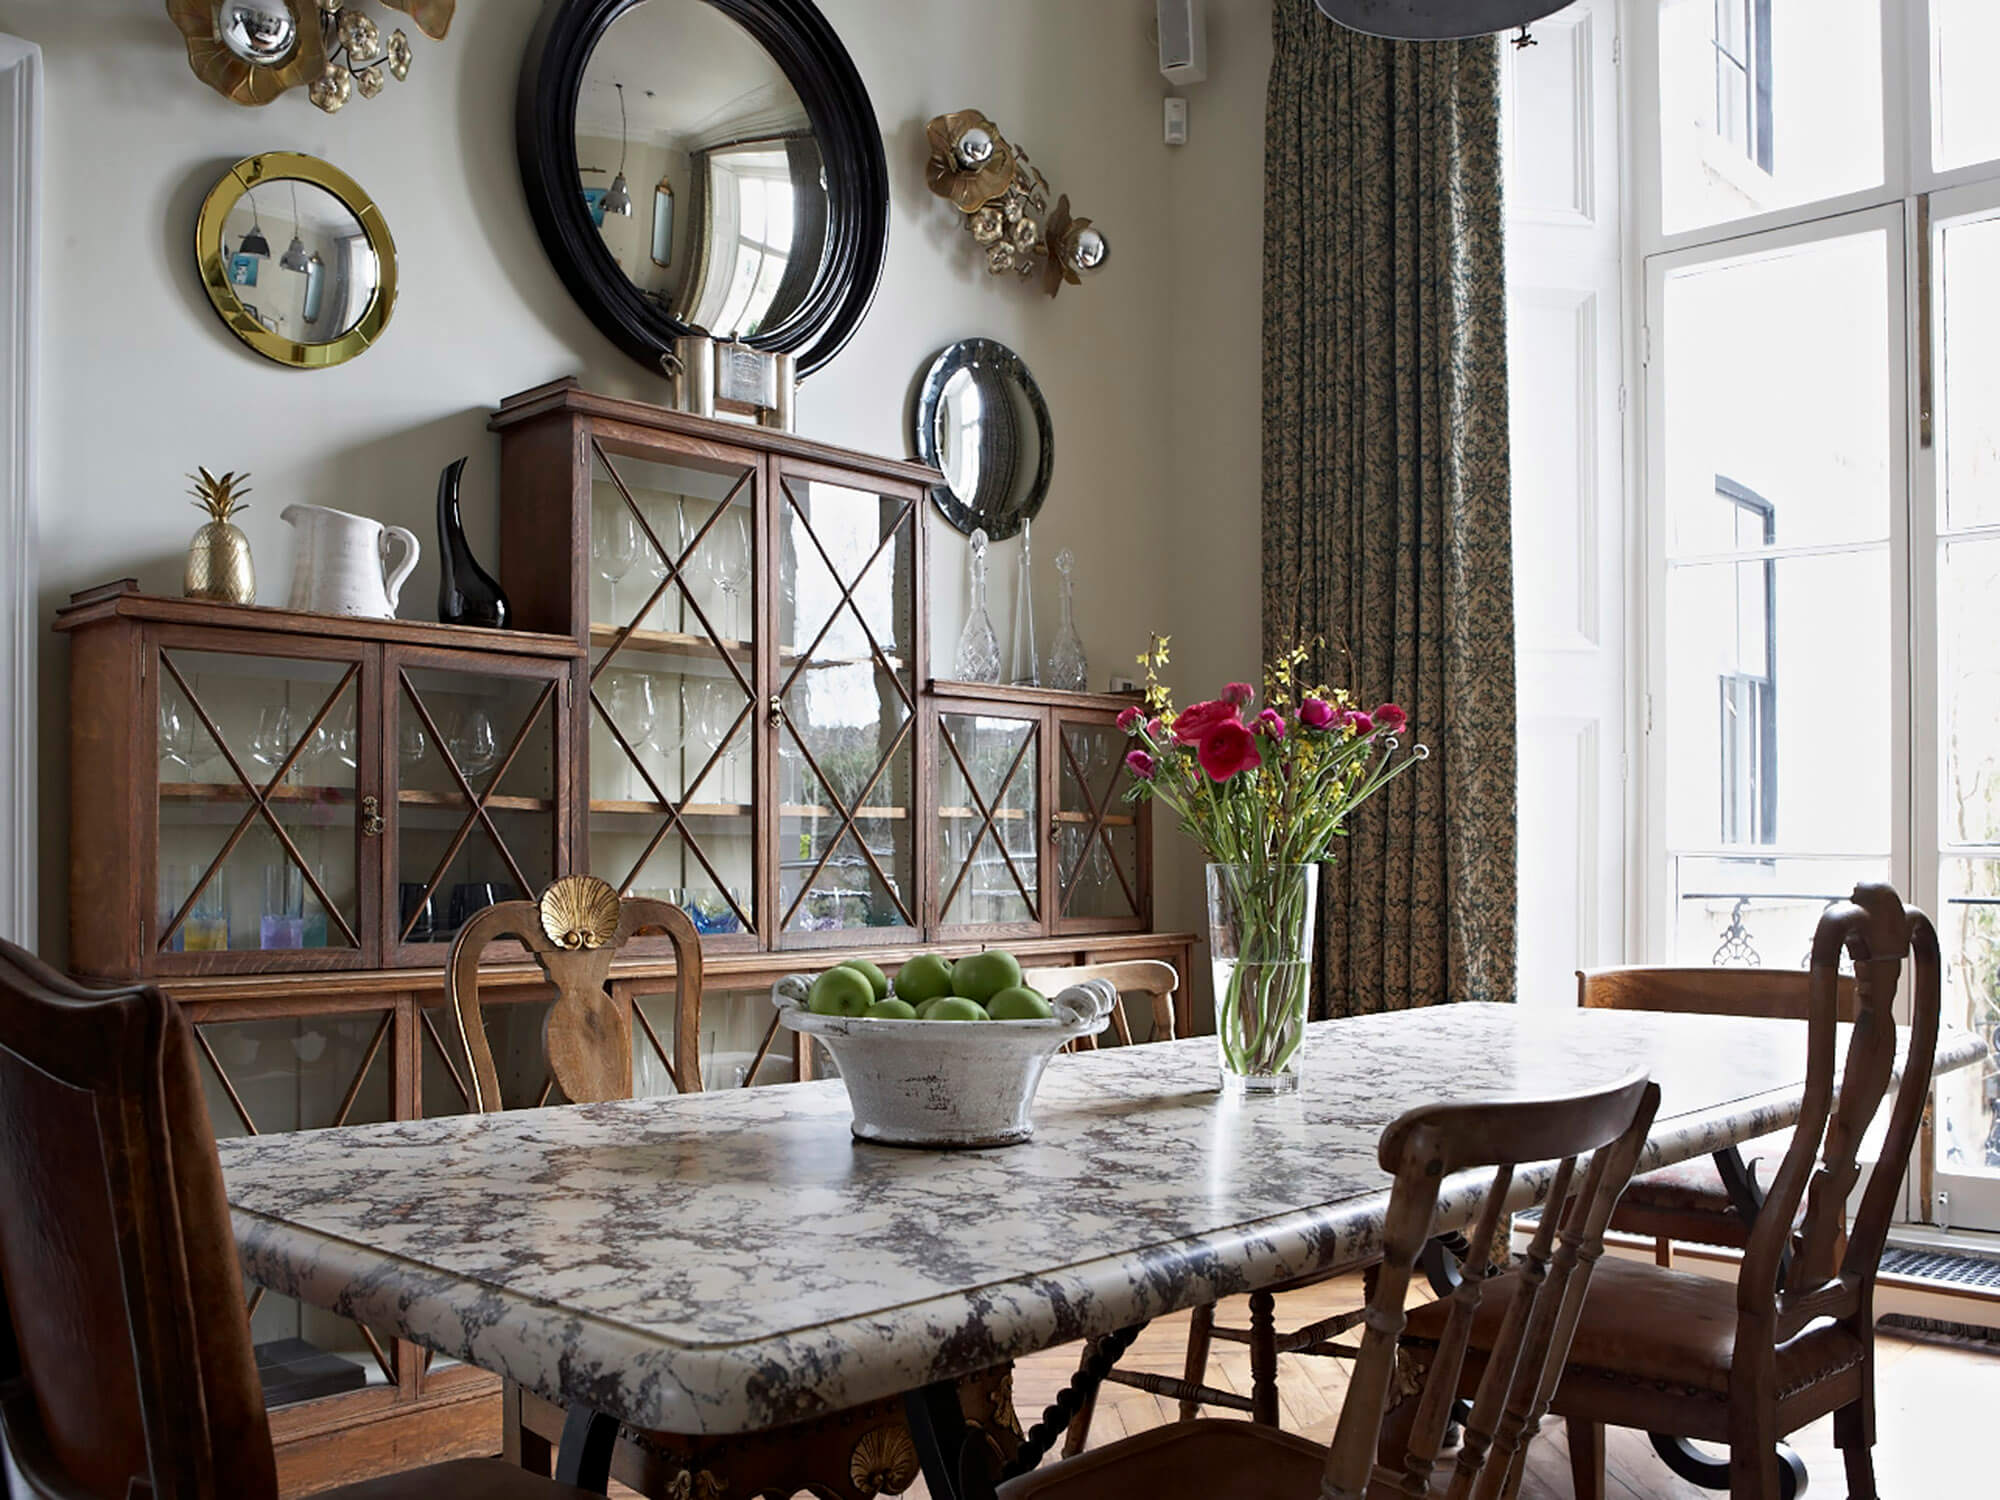 Ladbroke-Grove- W11-Dining-room